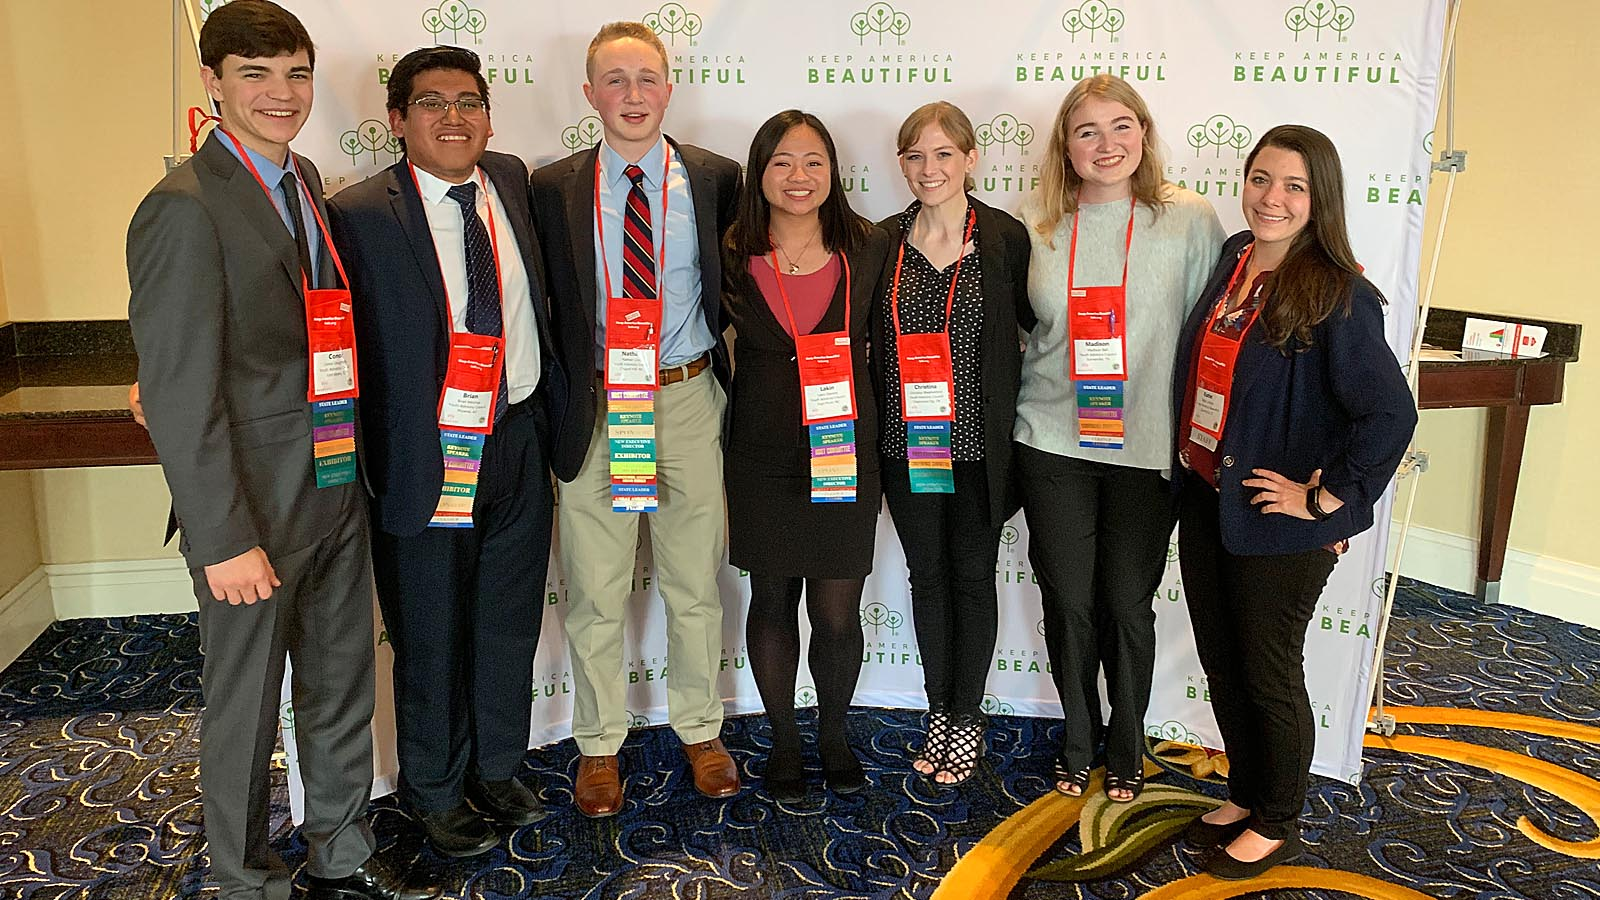 Keep America Beautiful Selects 2019/2020 National Youth Advisory Council